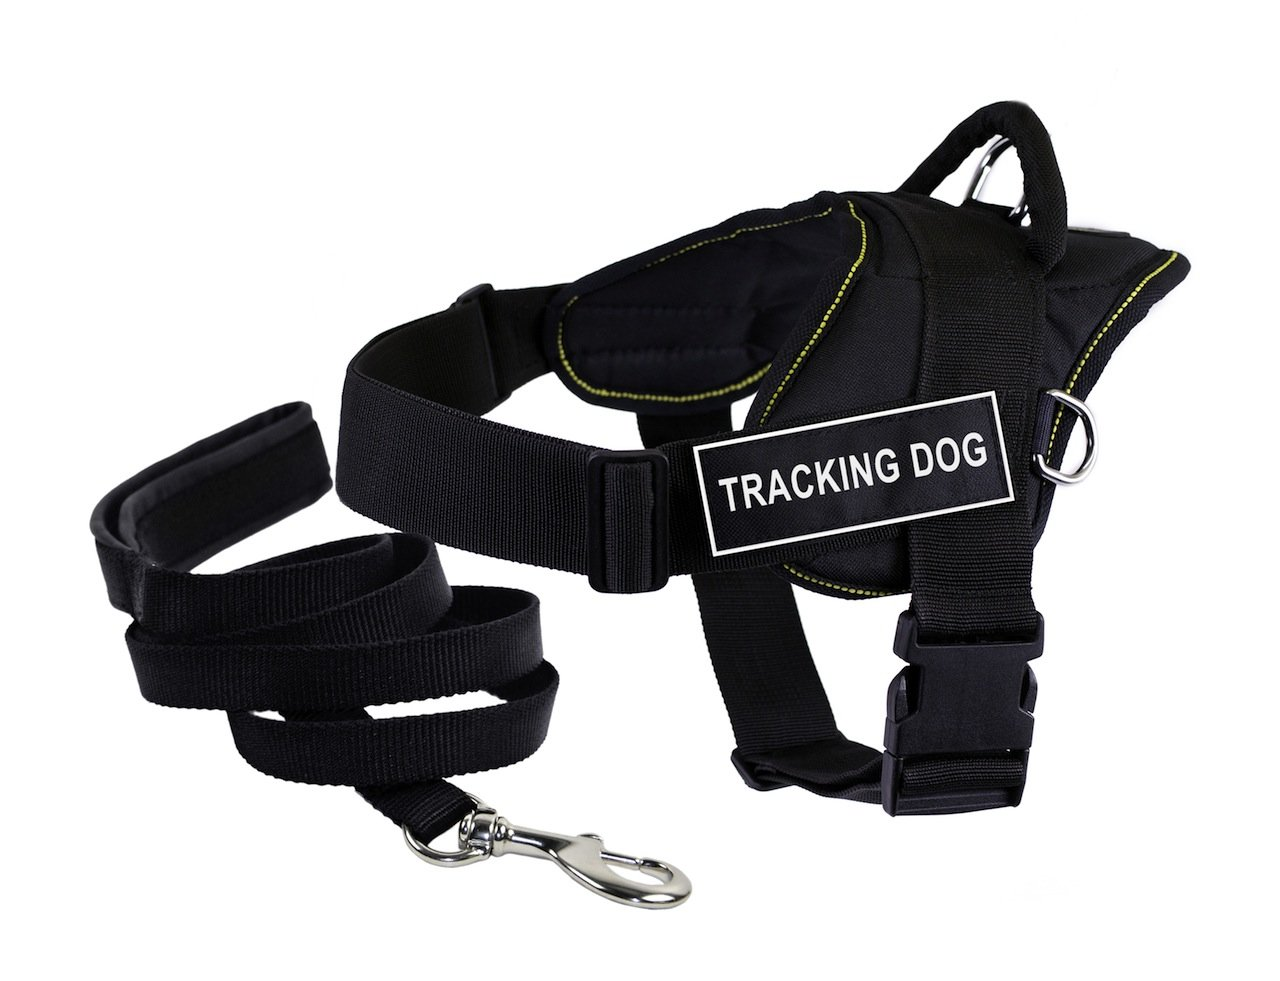 Dean & Tyler Bundle DT Fun Works Yellow Trim X-Large 34 to 47-Inch Tracking Dog  Harness with Padded Puppy Leash and 6-Feet Stainless Steel Snap, Black